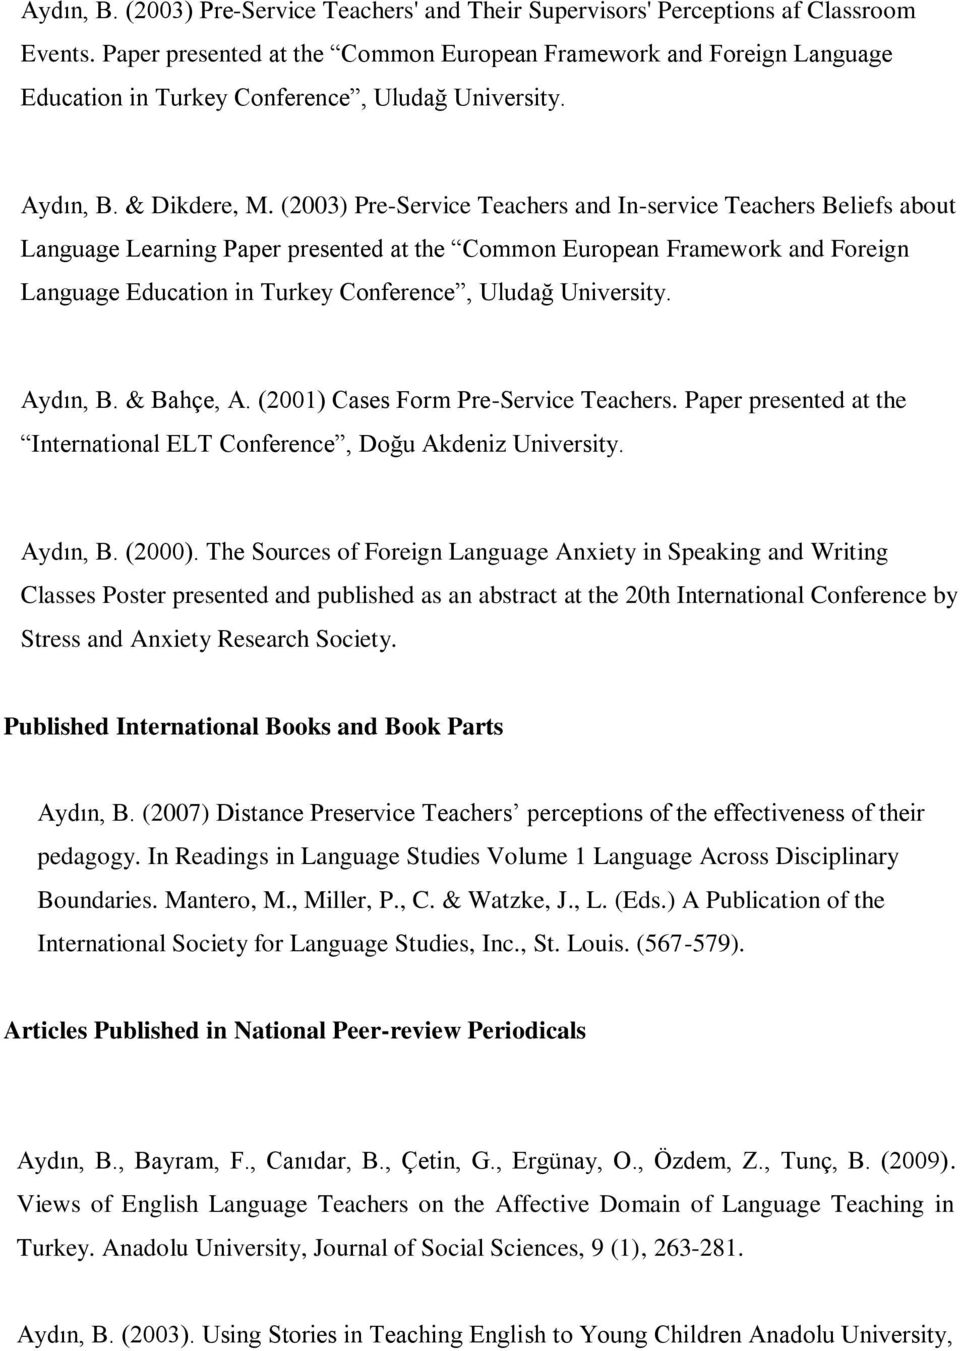 (2003) Pre-Service Teachers and In-service Teachers Beliefs about Language Learning Paper presented at the Common European Framework and Foreign Language Education in Turkey Conference, Uludağ